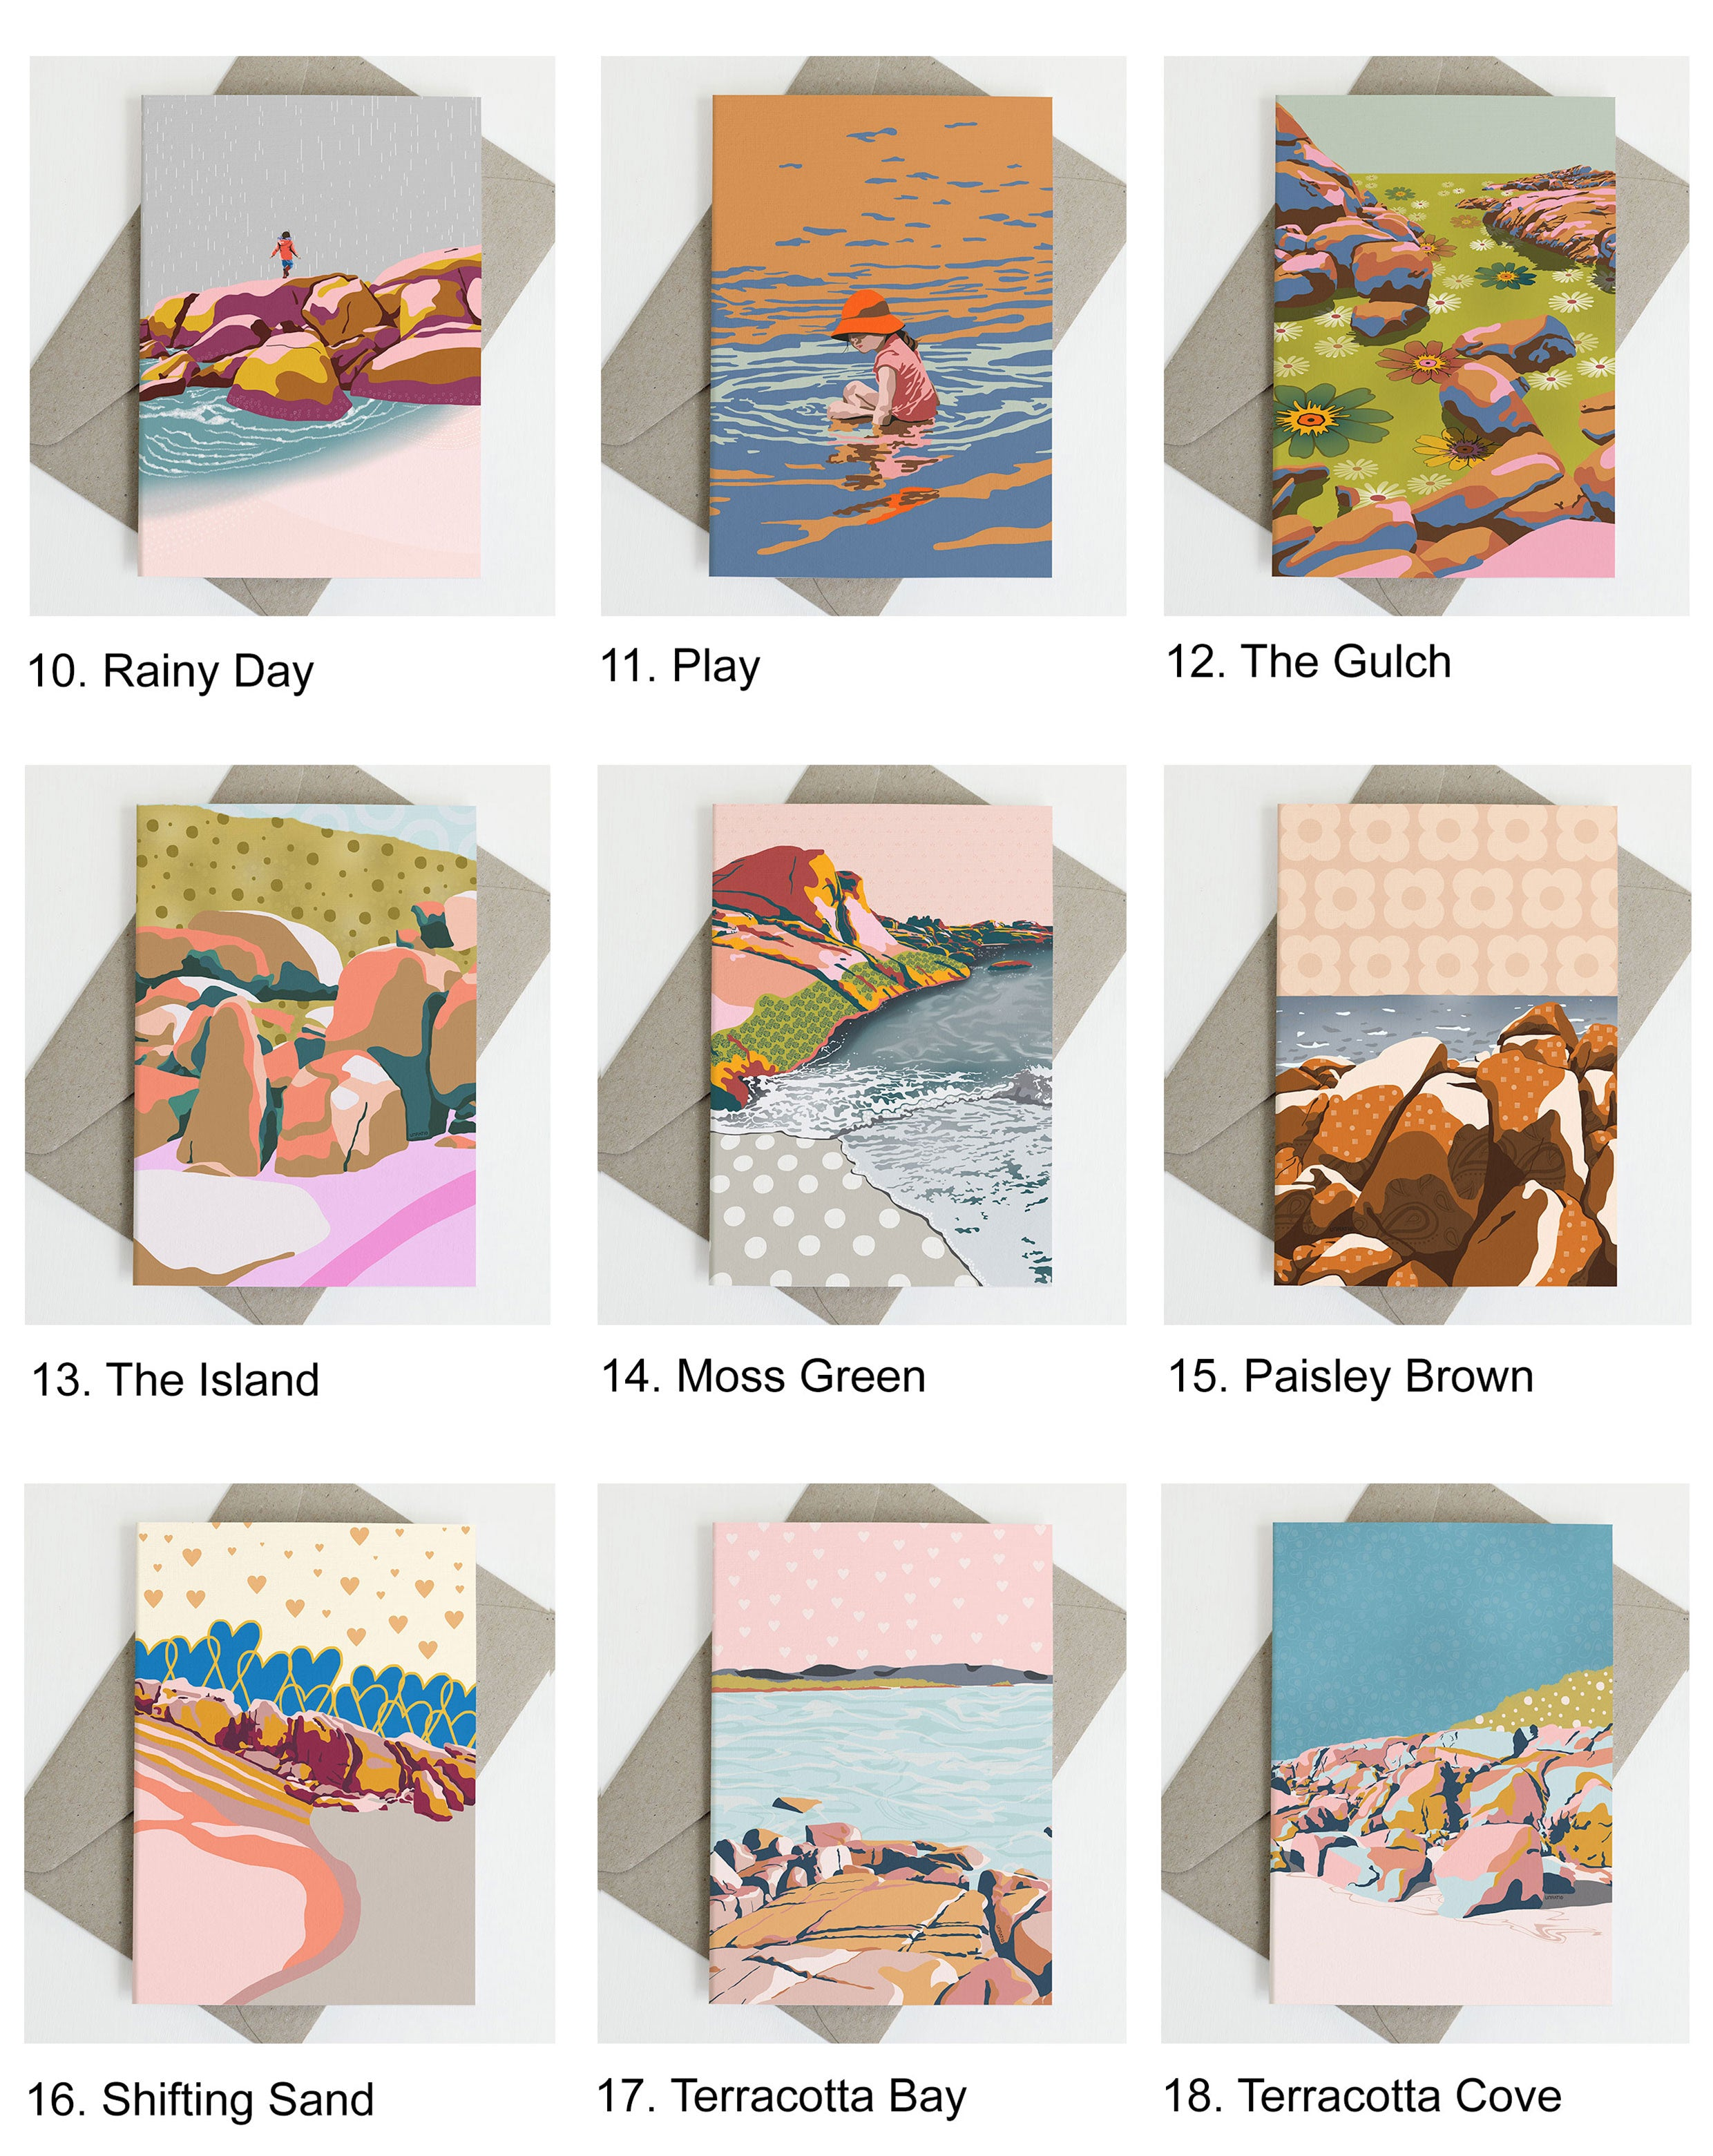 Catalogue of Beach Greeting cards from Australian illustrator